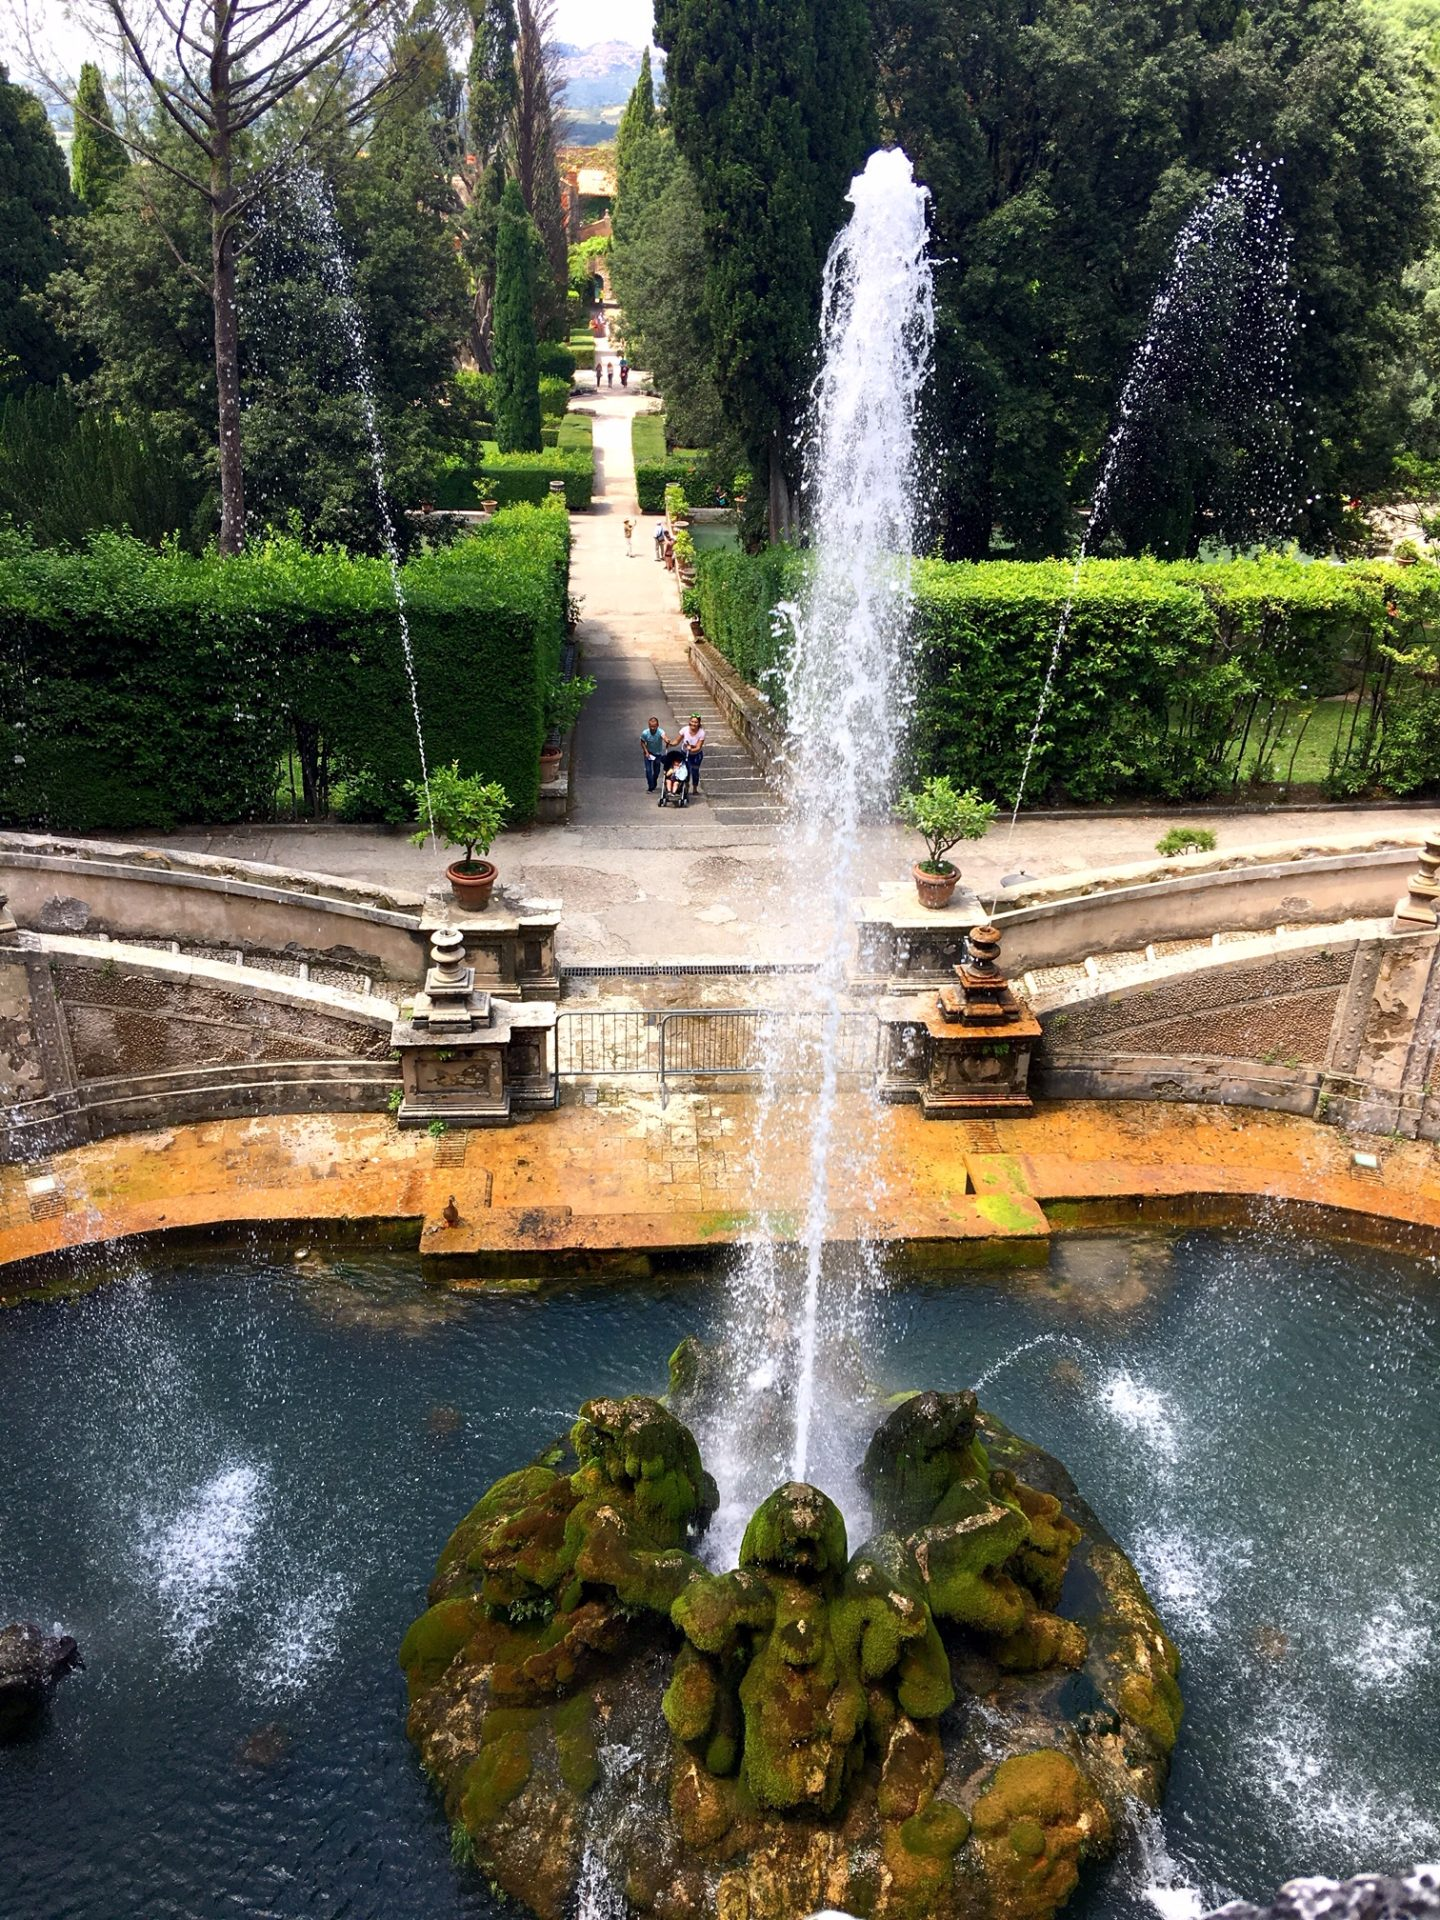 Fountain in the gardens at Villa d'Este in Tivoli